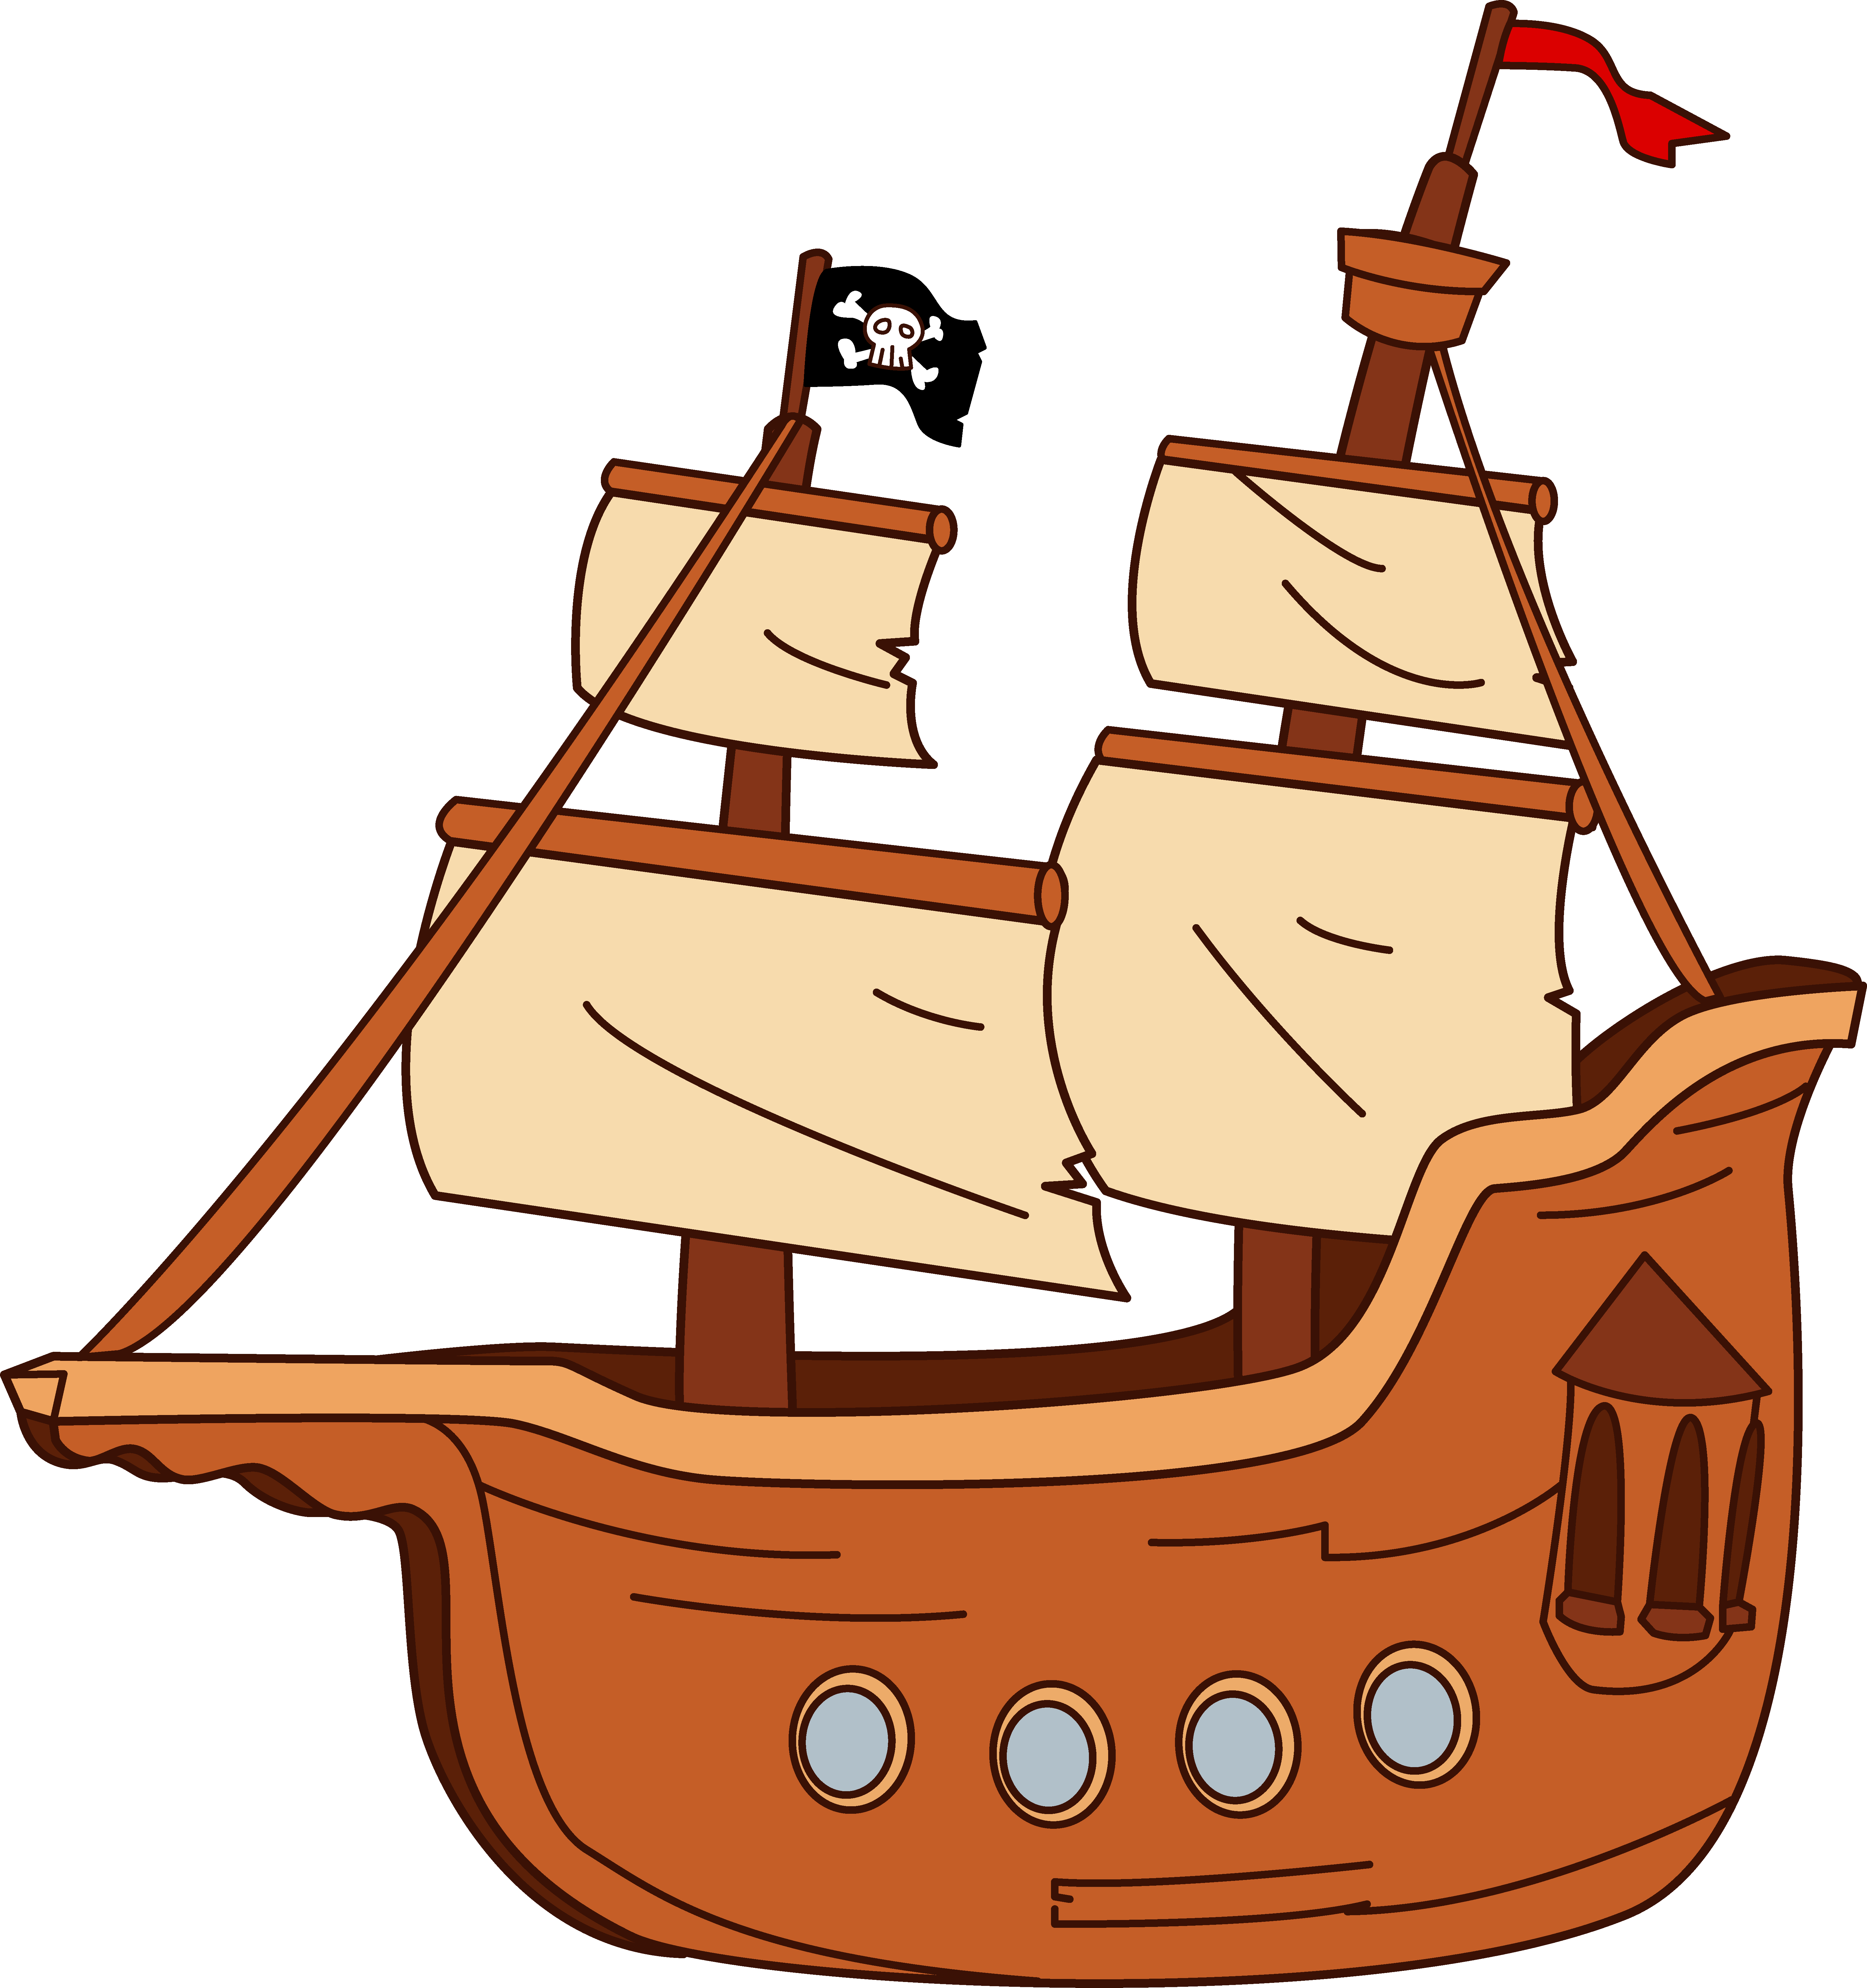 Pirate Ship Design - Free Clip Art